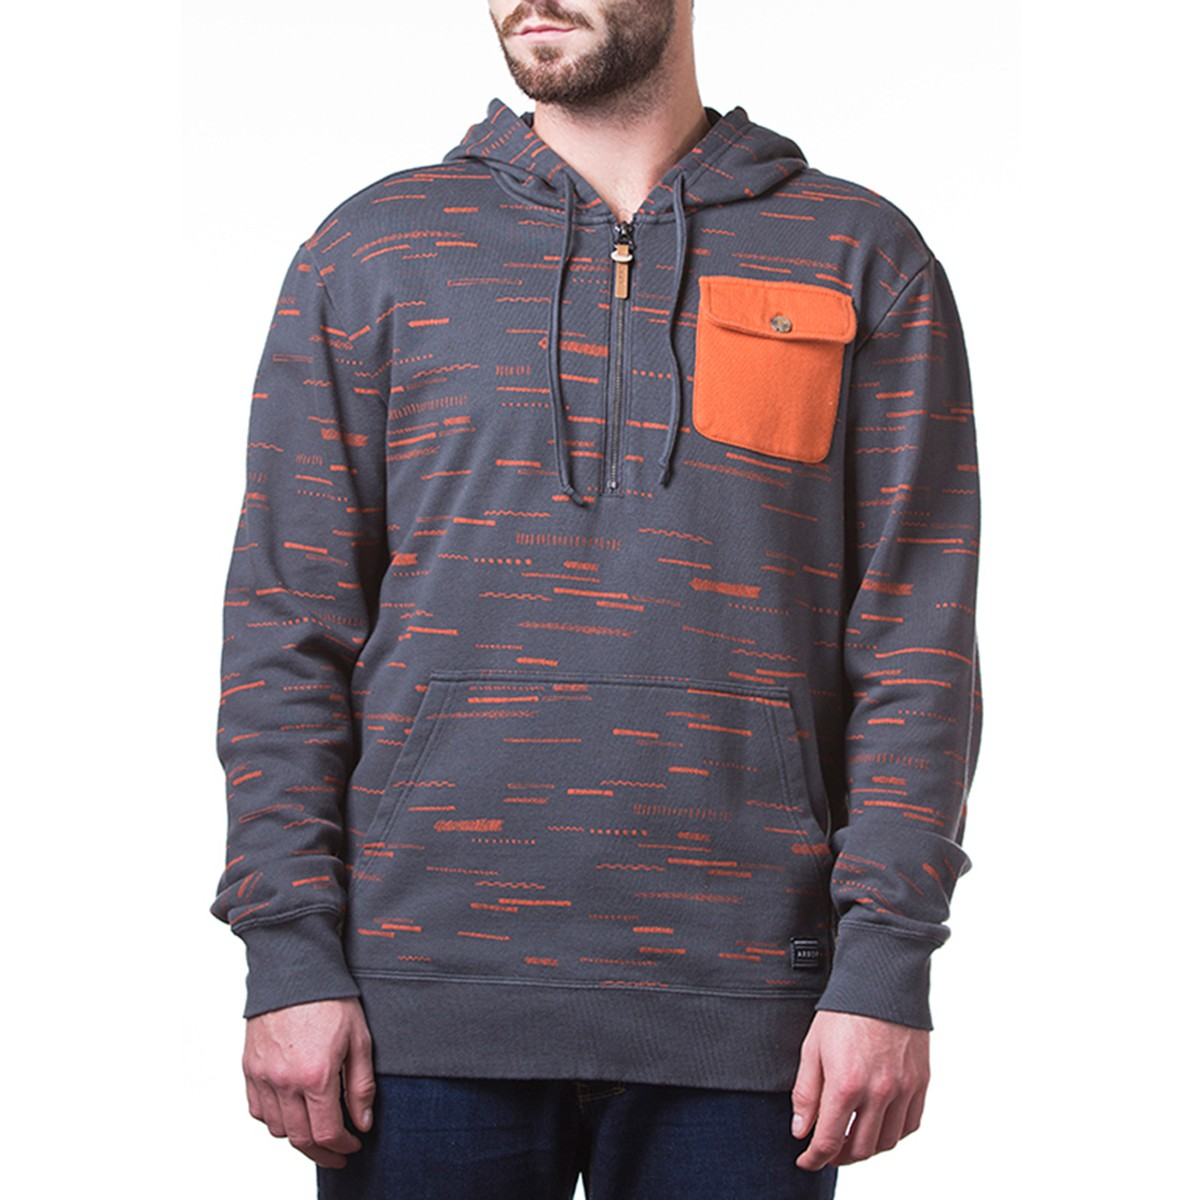 Arbor Apparel Oakwood Zip Up Sweatshirt - Dark Shadow